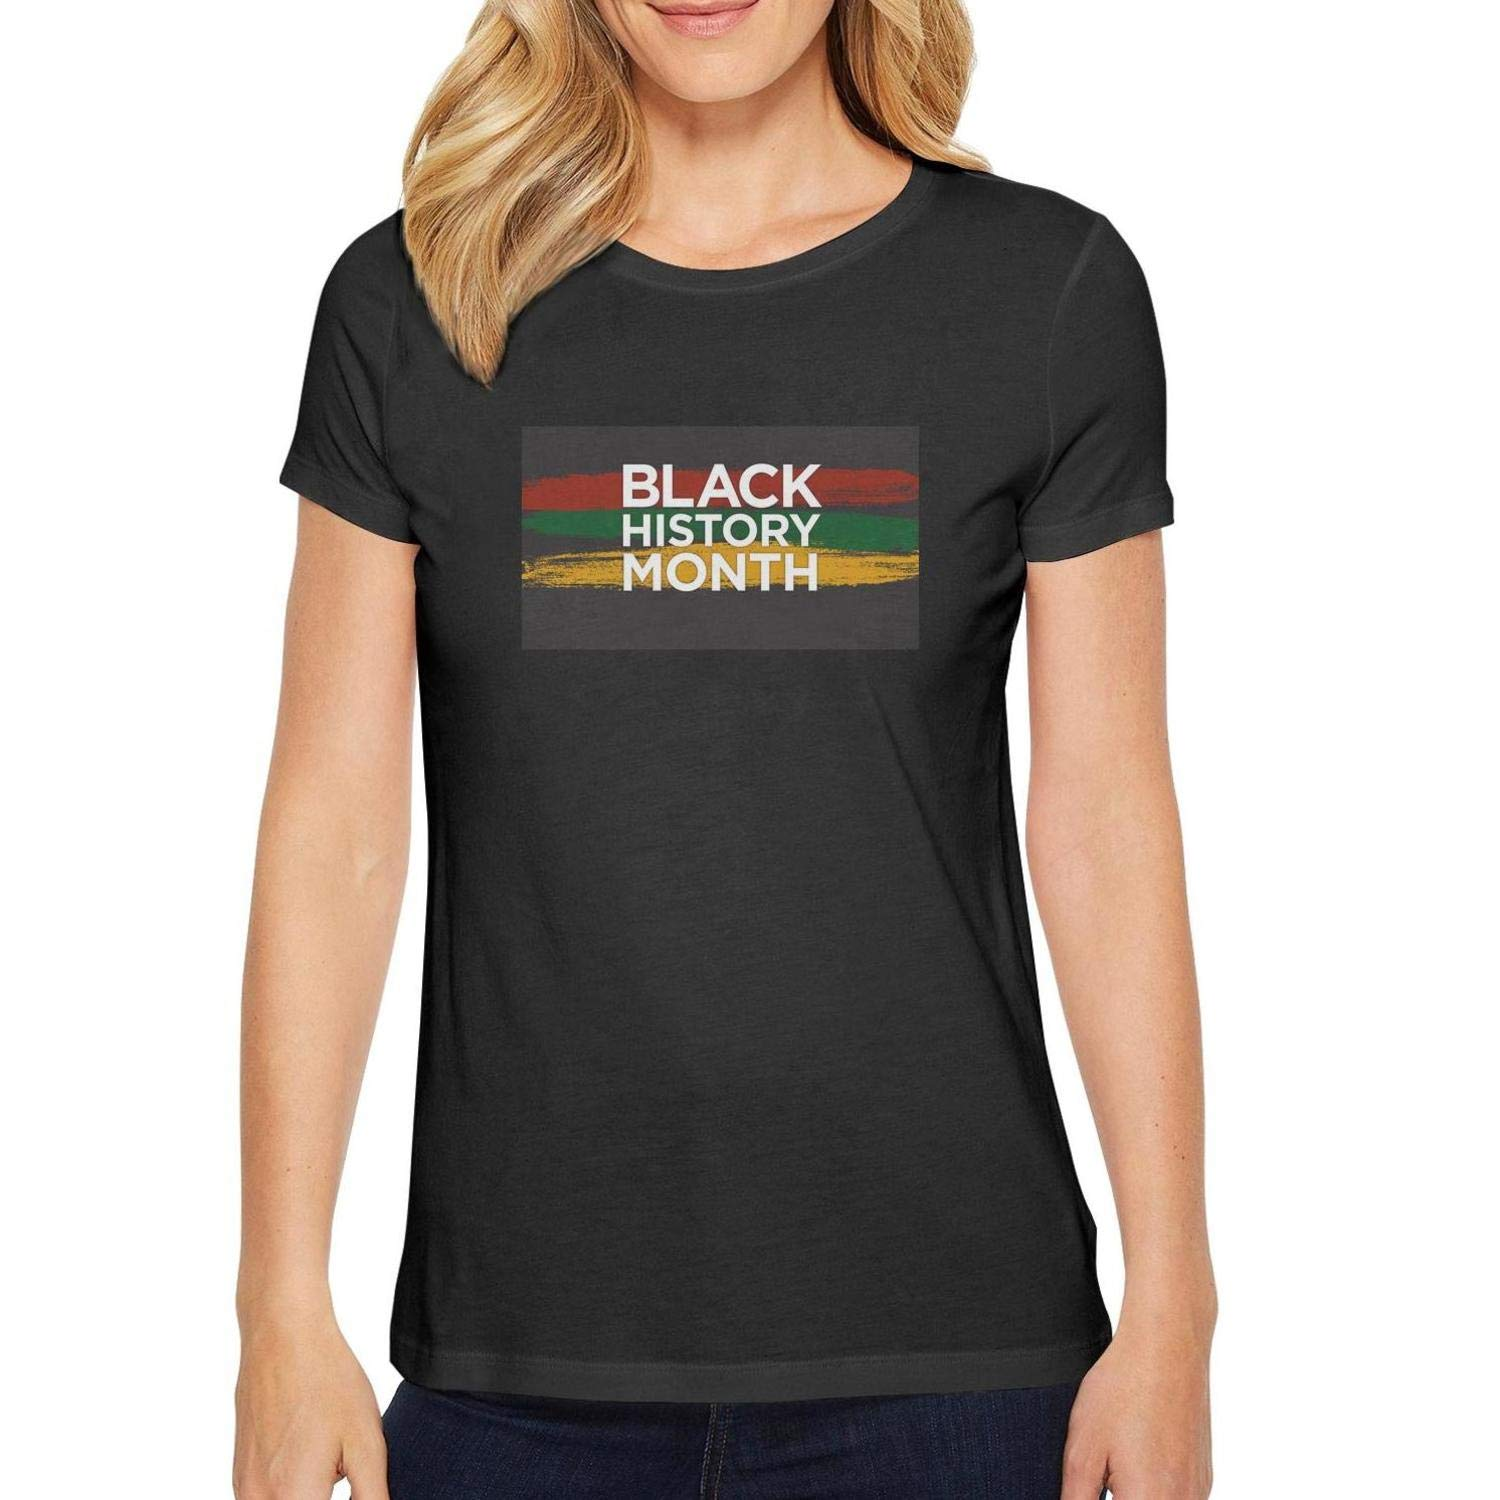 Black History Black Power Superheroes Month Tee Top Black And Proud T-Shirt